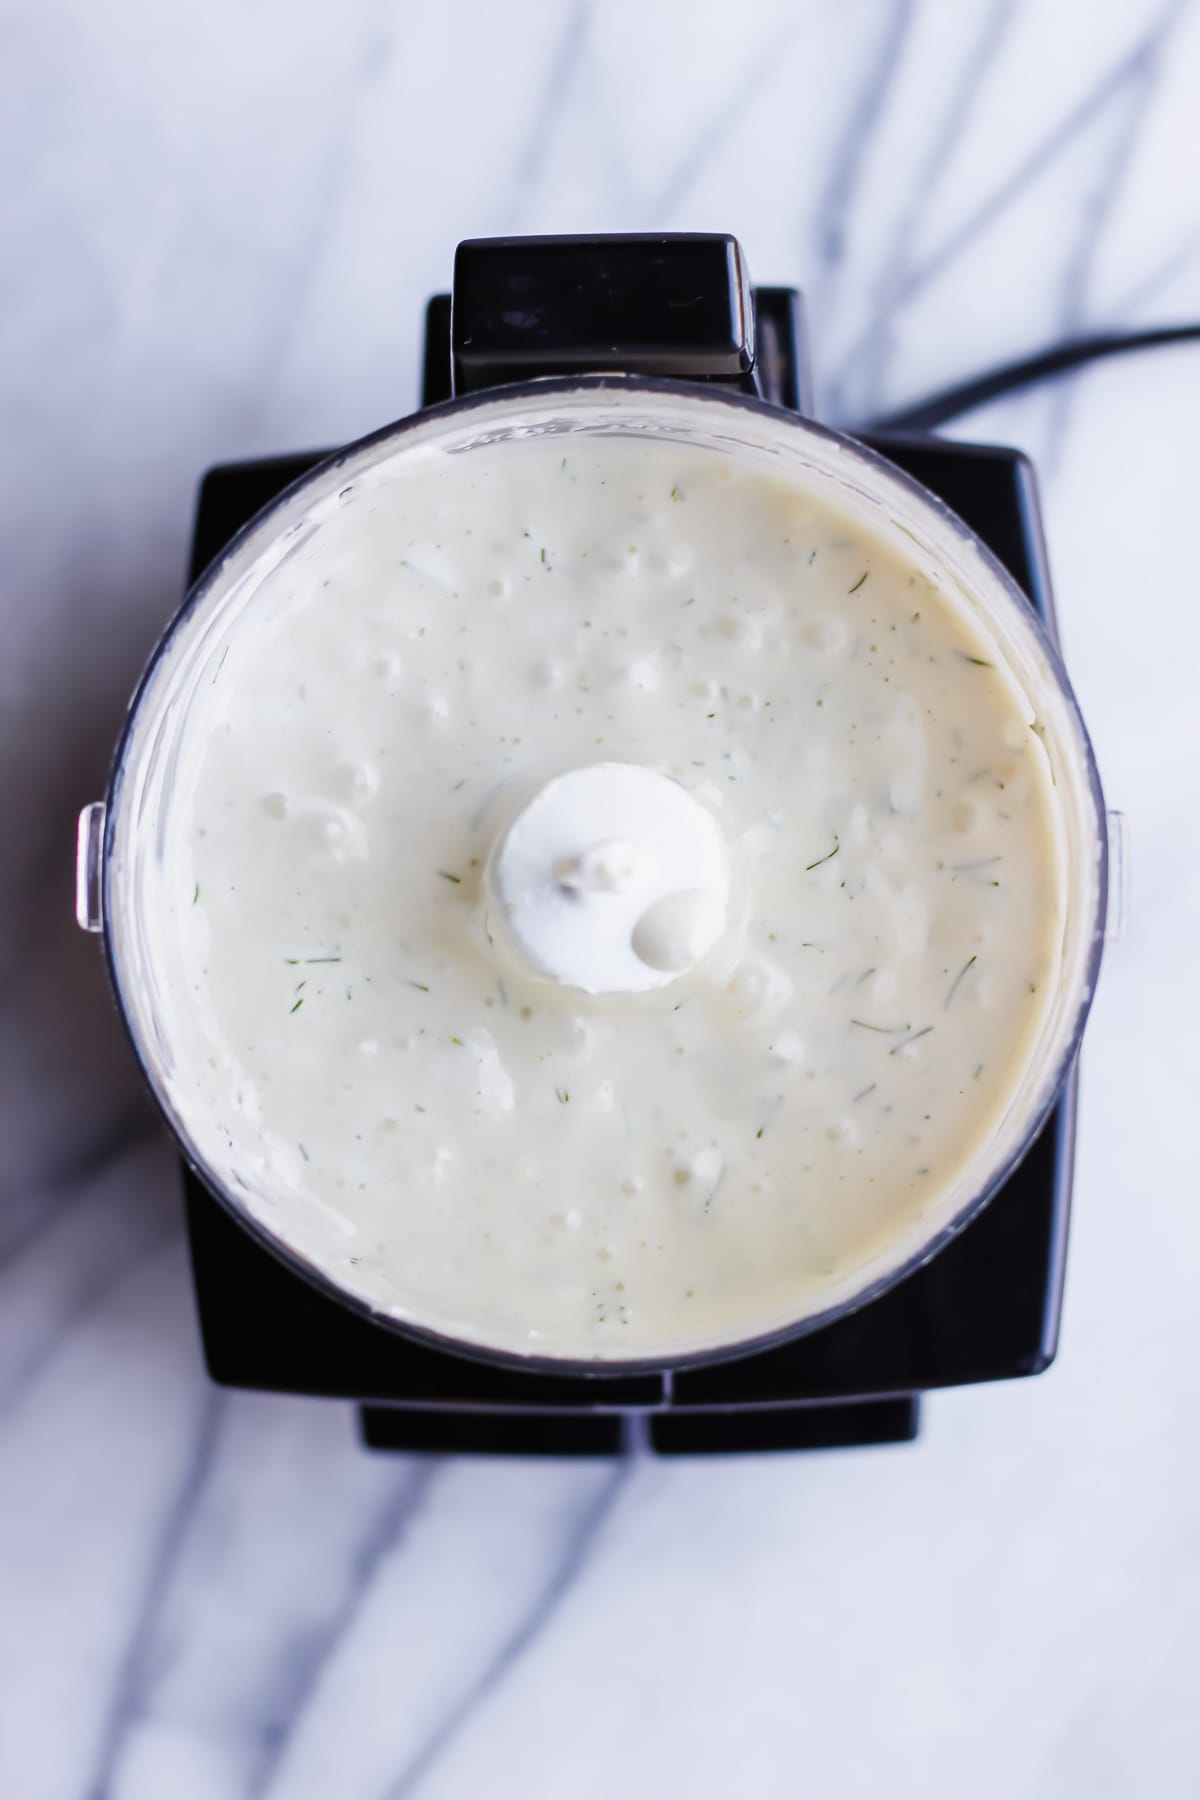 How to Make Homemade Whole30 Tartar Sauce - and easy and delicious tartar sauce that is Whole30 compliant! #whole30 #paleo #tartarsauce #fish